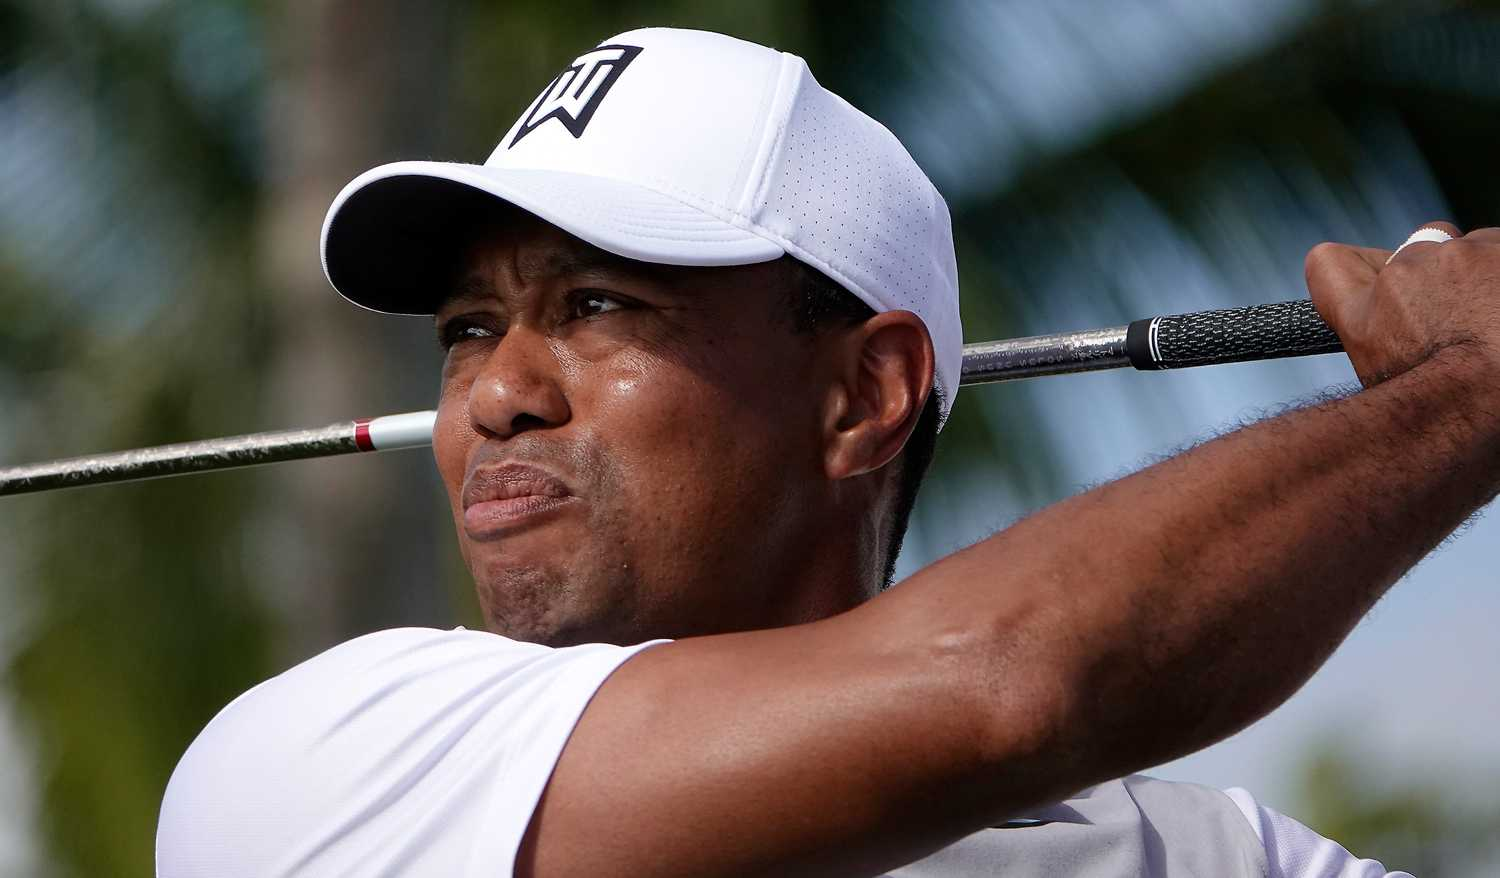 Tiger Woods watches a tee shot fly Feb. 21, 2018, during the Pro-Am round of the Honda Classic at the PGA National in Palm Beach Gardens, Florida. (Joe Cavaretta/Sun Sentinel/TNS)